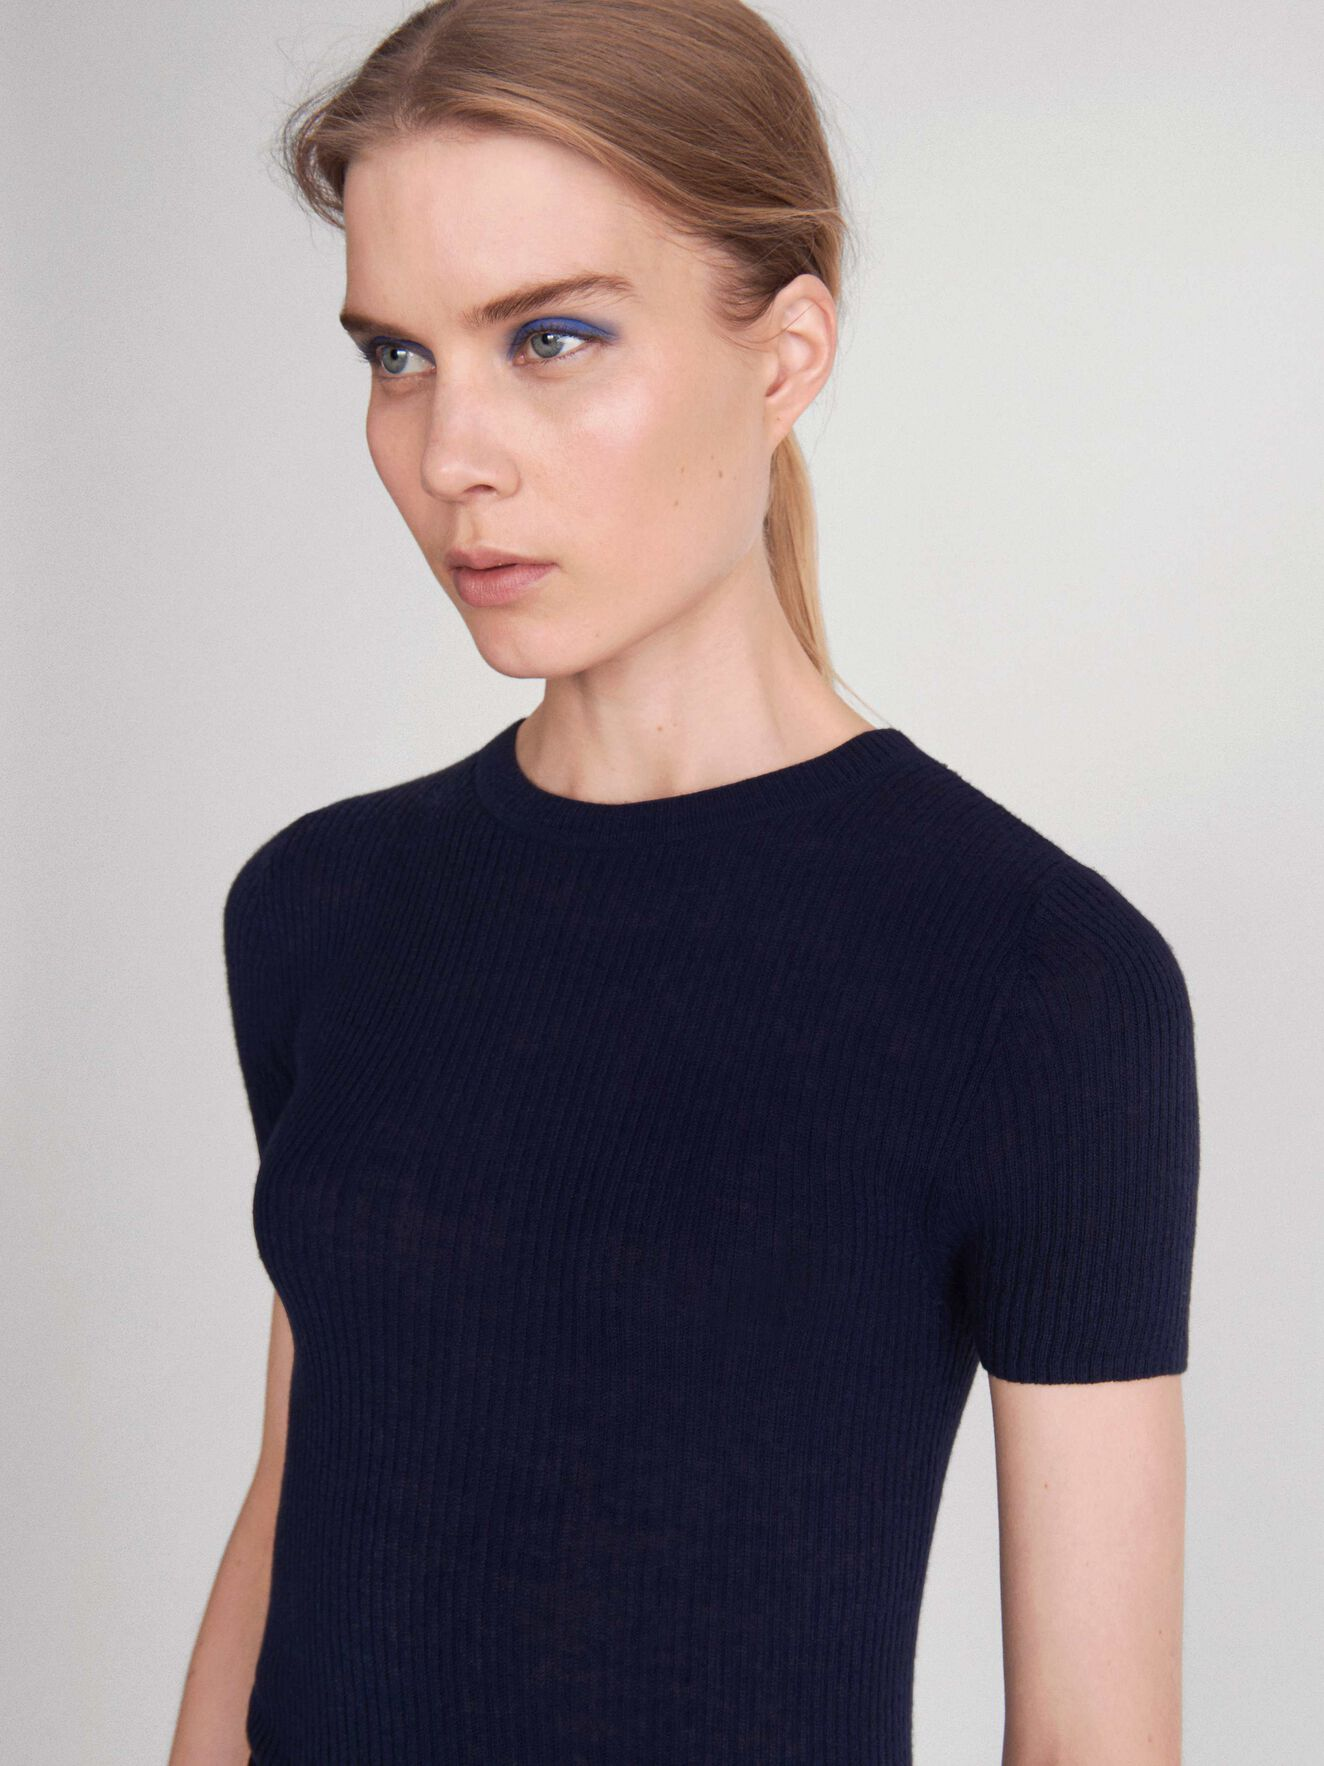 Orvi T-Shirt in Blue from Tiger of Sweden